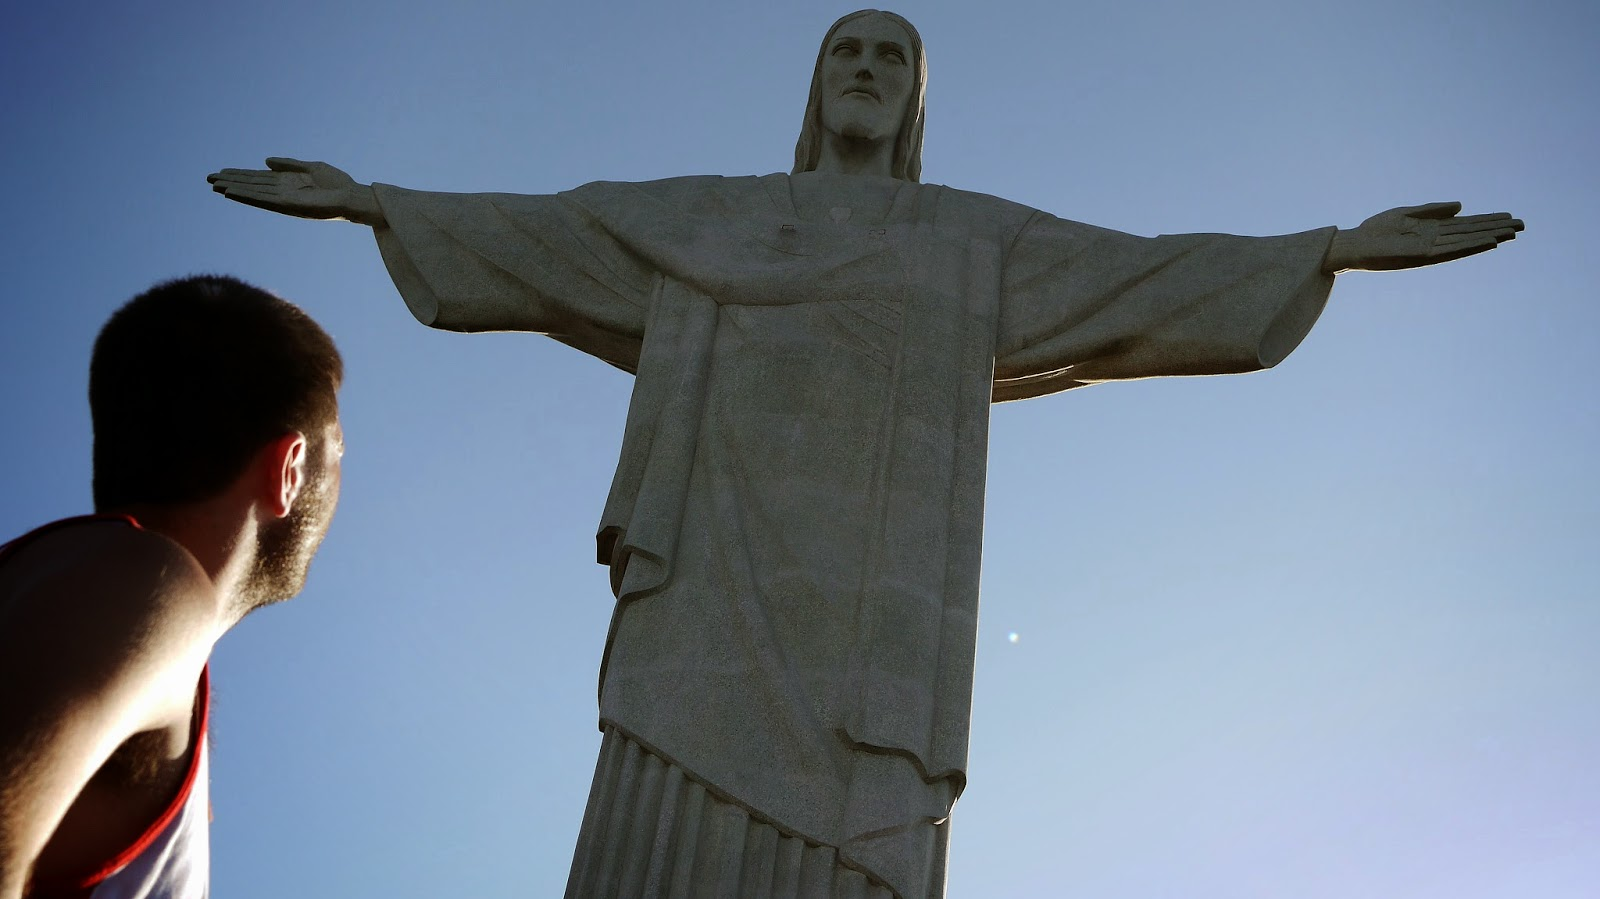 Guy looking at Christ the Redeemer Rio de Janeiro